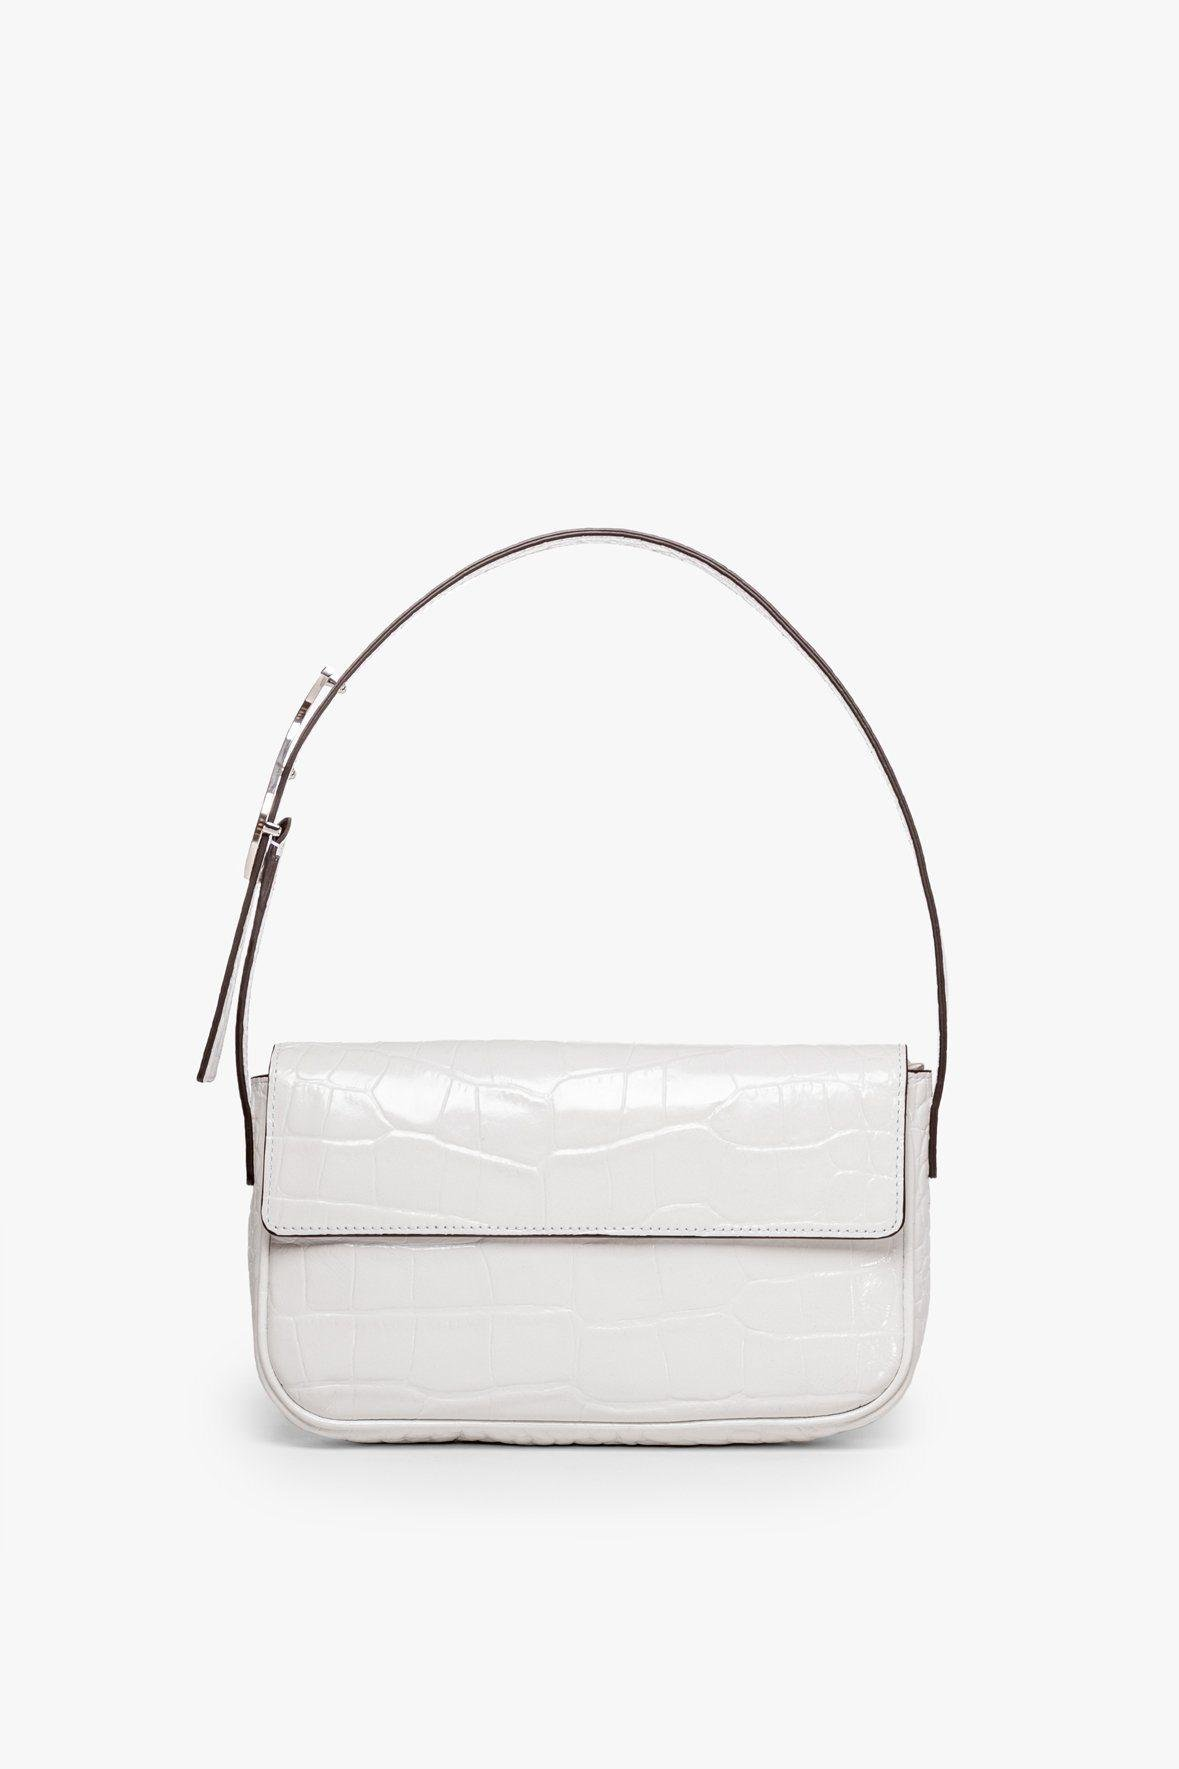 TOMMY LEATHER BAG | FRESH WHITE CROC EMBOSSED